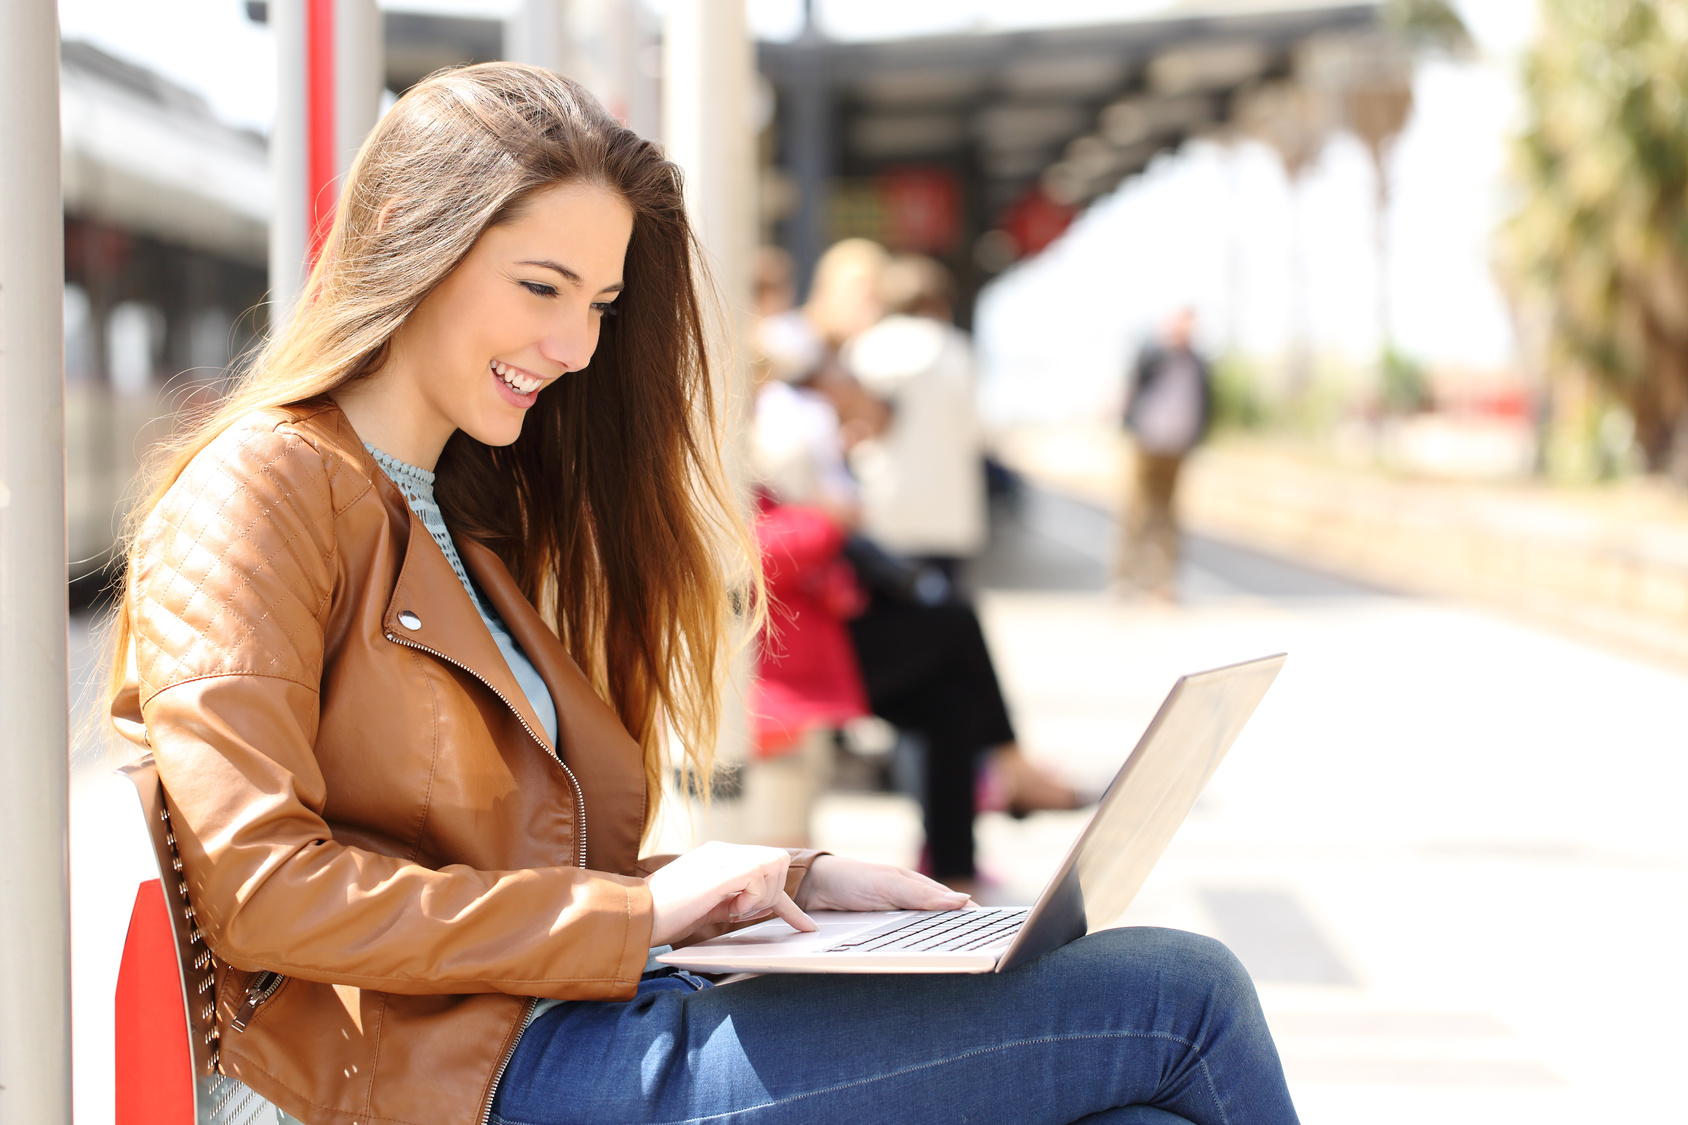 Side view of a girl using a laptop while waiting in a train station in a sunny day